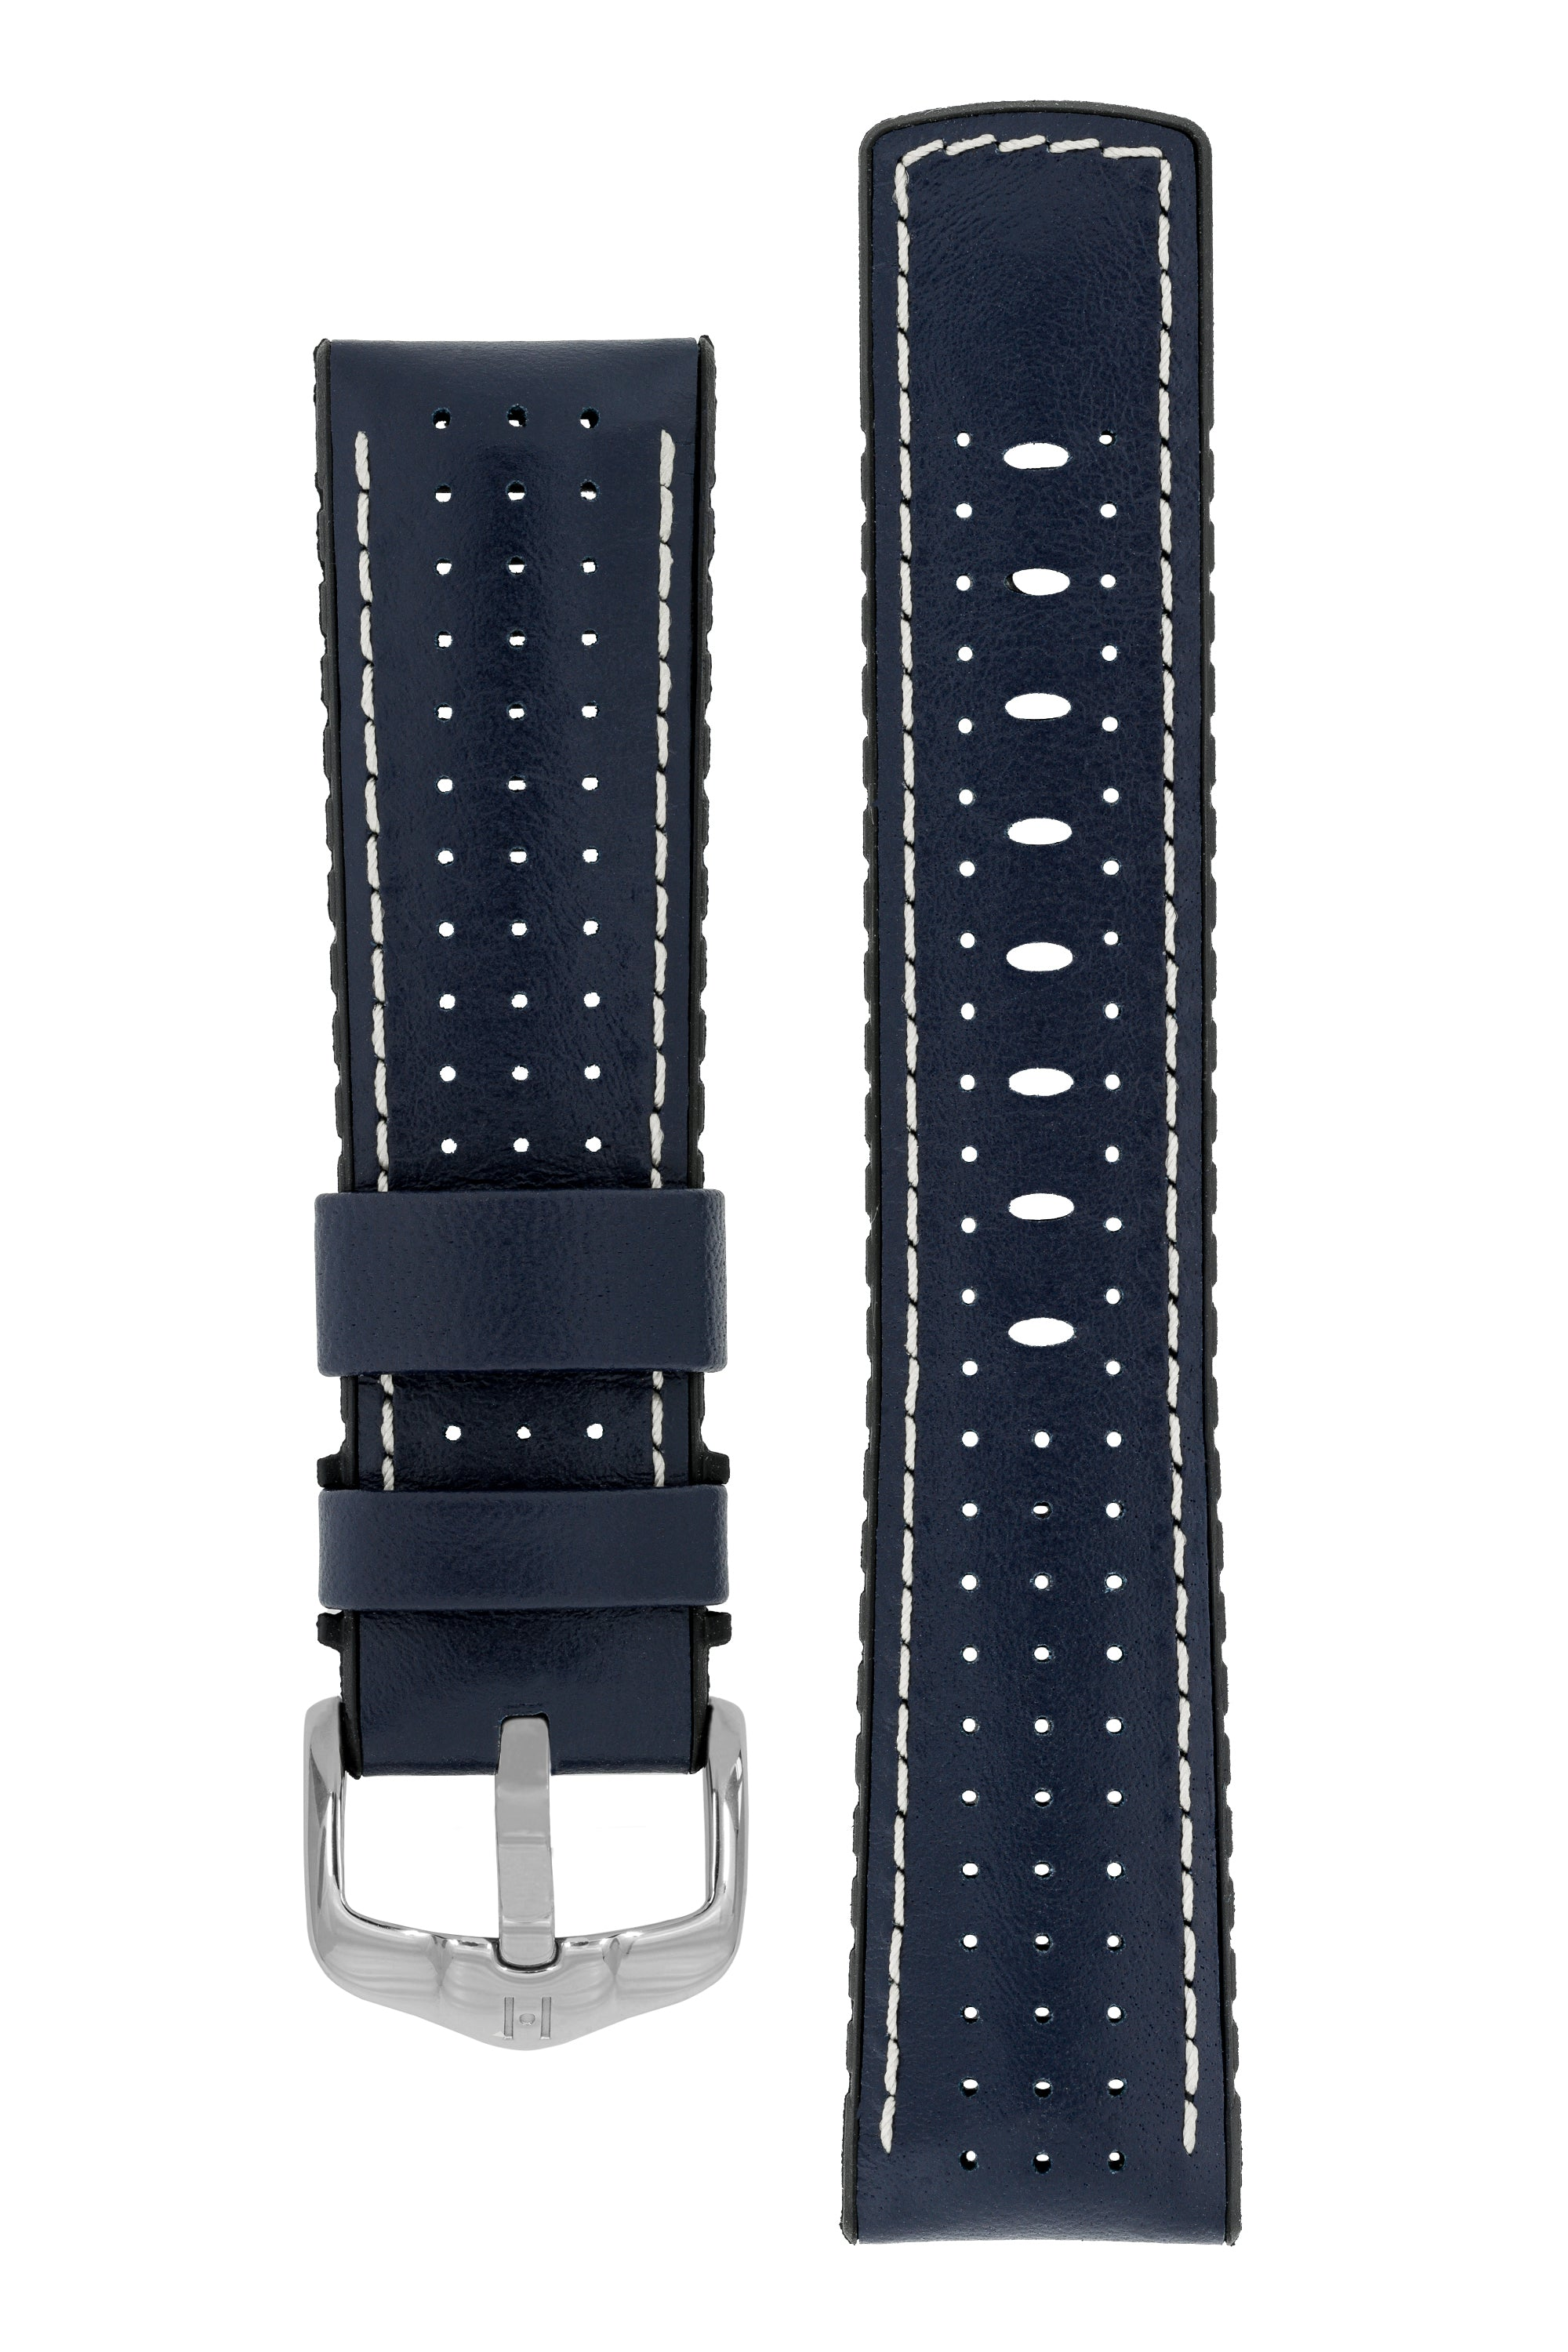 Hirsch TIGER Perforated Leather Performance Watch Strap in BLUE